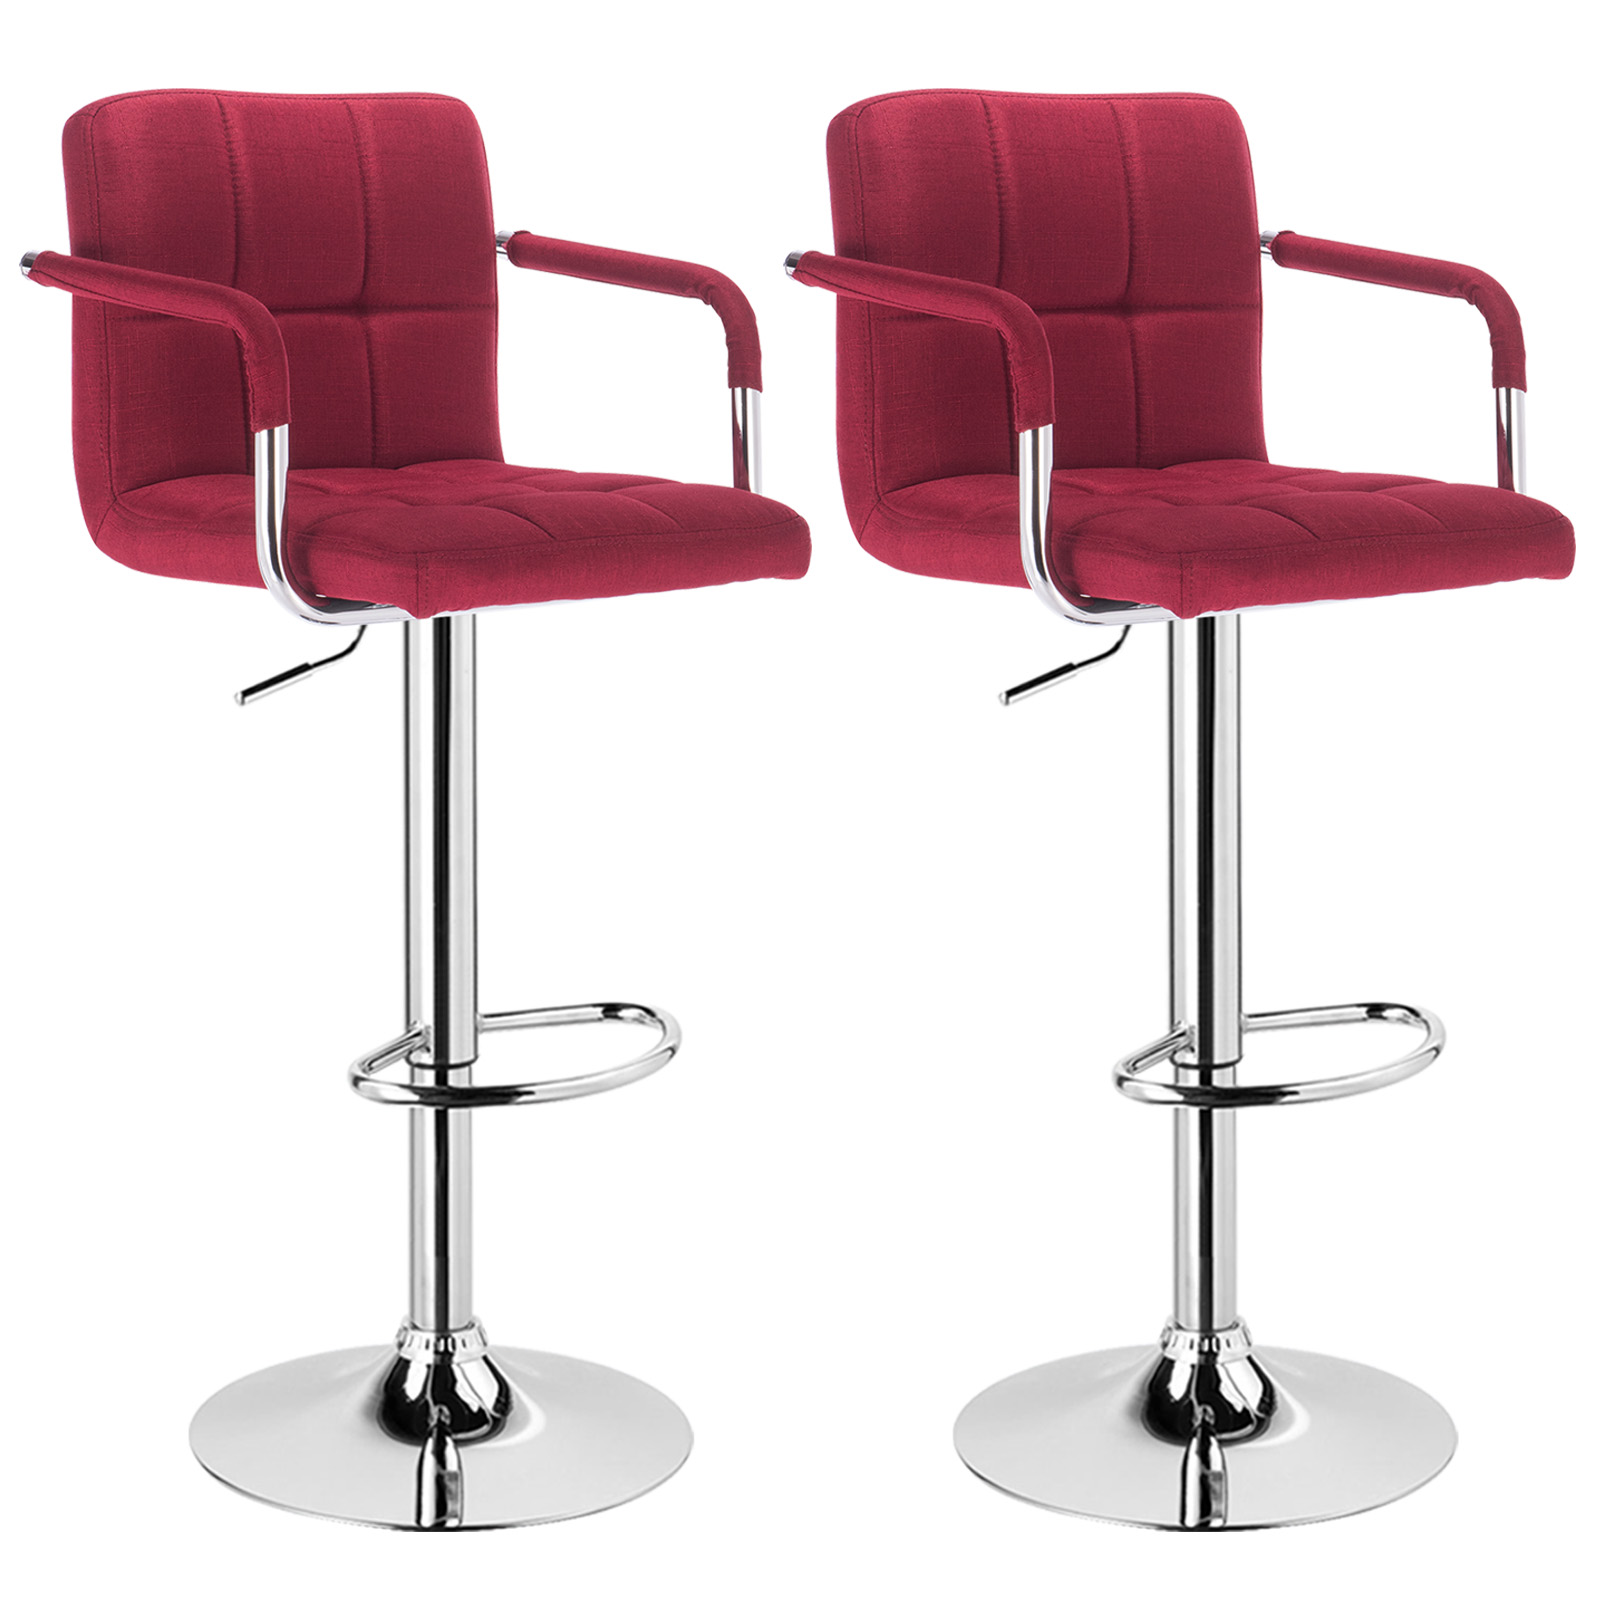 Songmics Lot De 2 Tabourets De Bar Stool Tabouret De Bar Lot De 2 En Lin Avec Accoudoir Cuisine